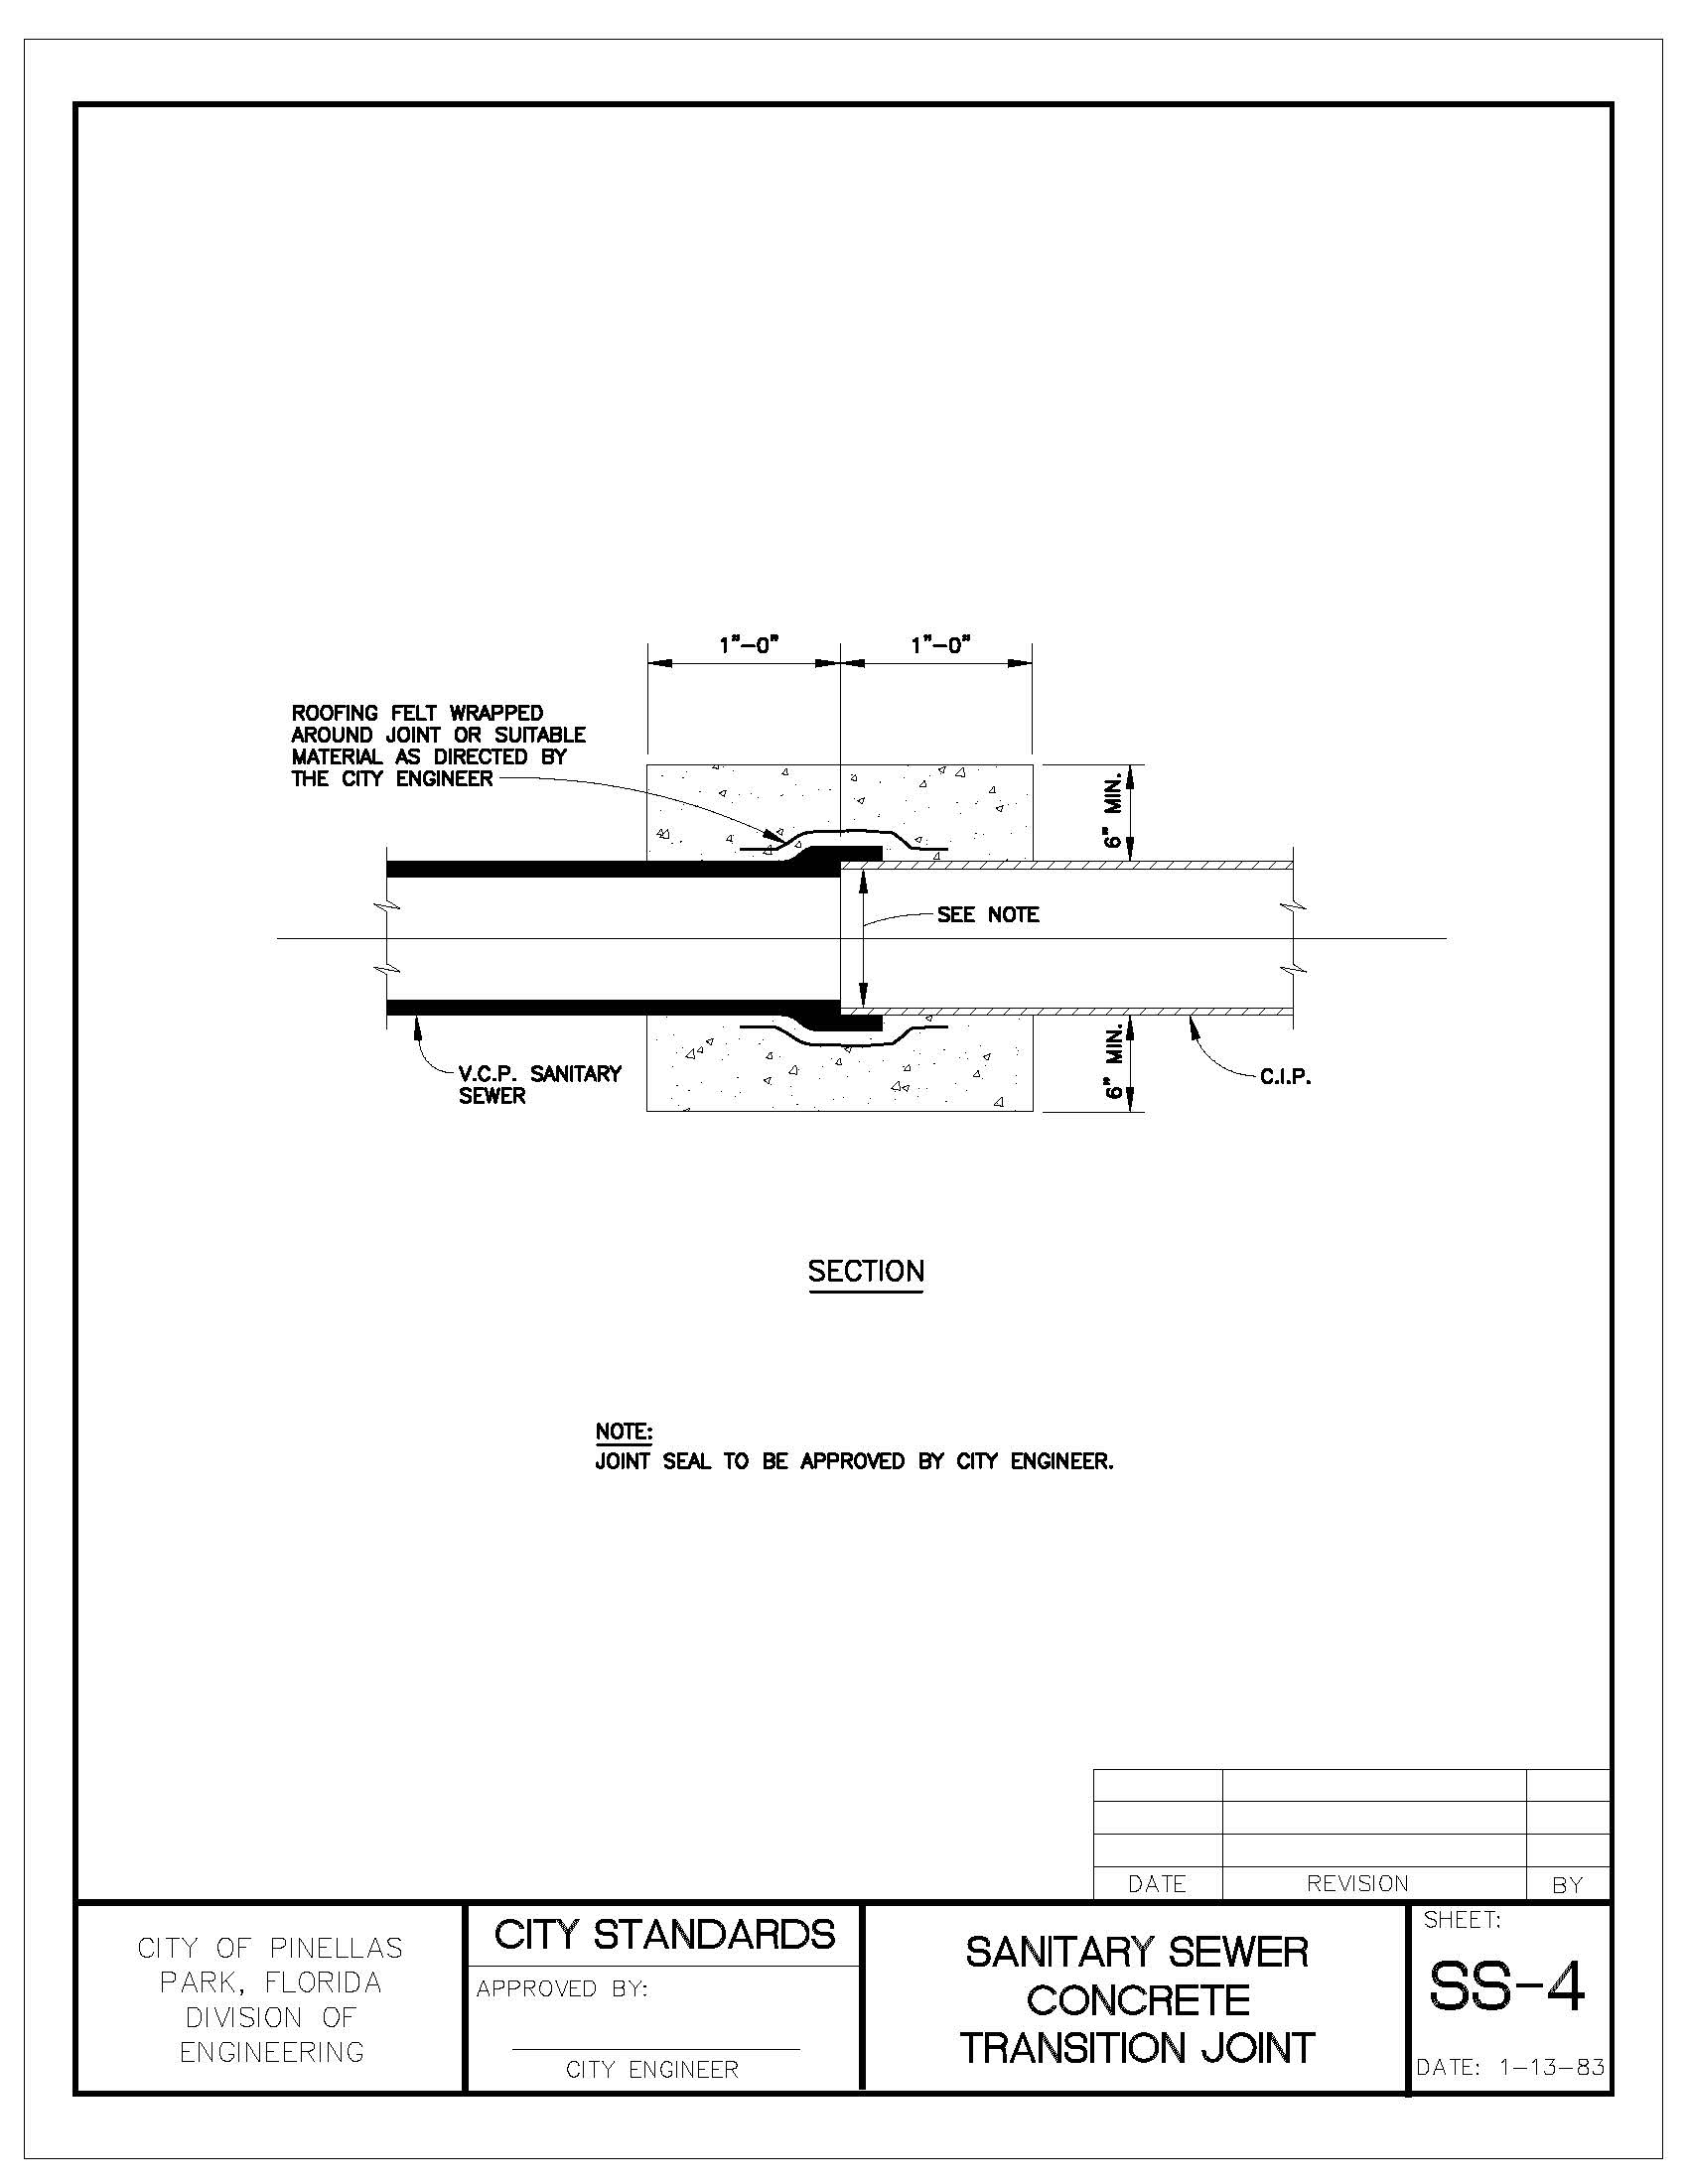 Engineering Manual v5_201908121127291138_Page_068 sanitary sewer concrete transition joint